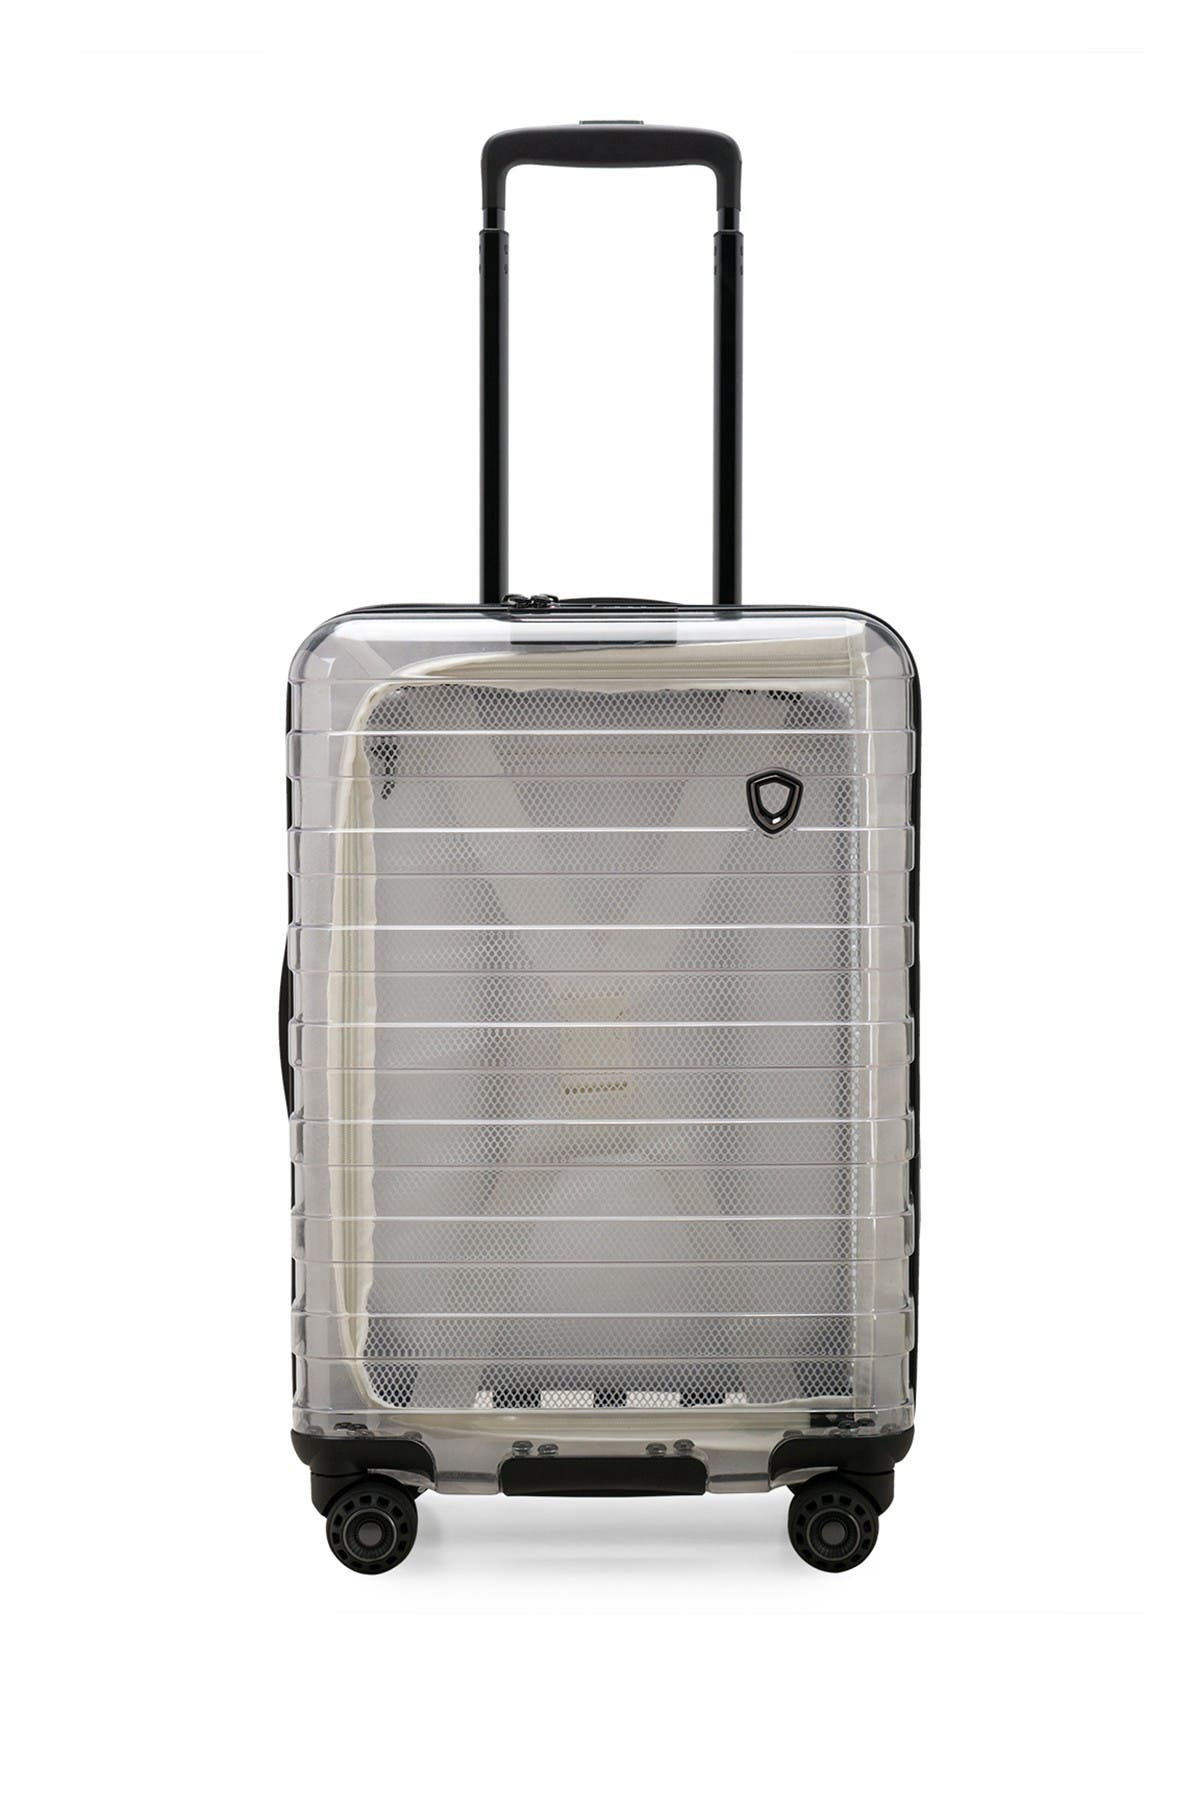 """Image of Traveler's Choice Luggage Millennial Special Edition 21"""" Hardside Carry-On Spinner & Power Bank"""